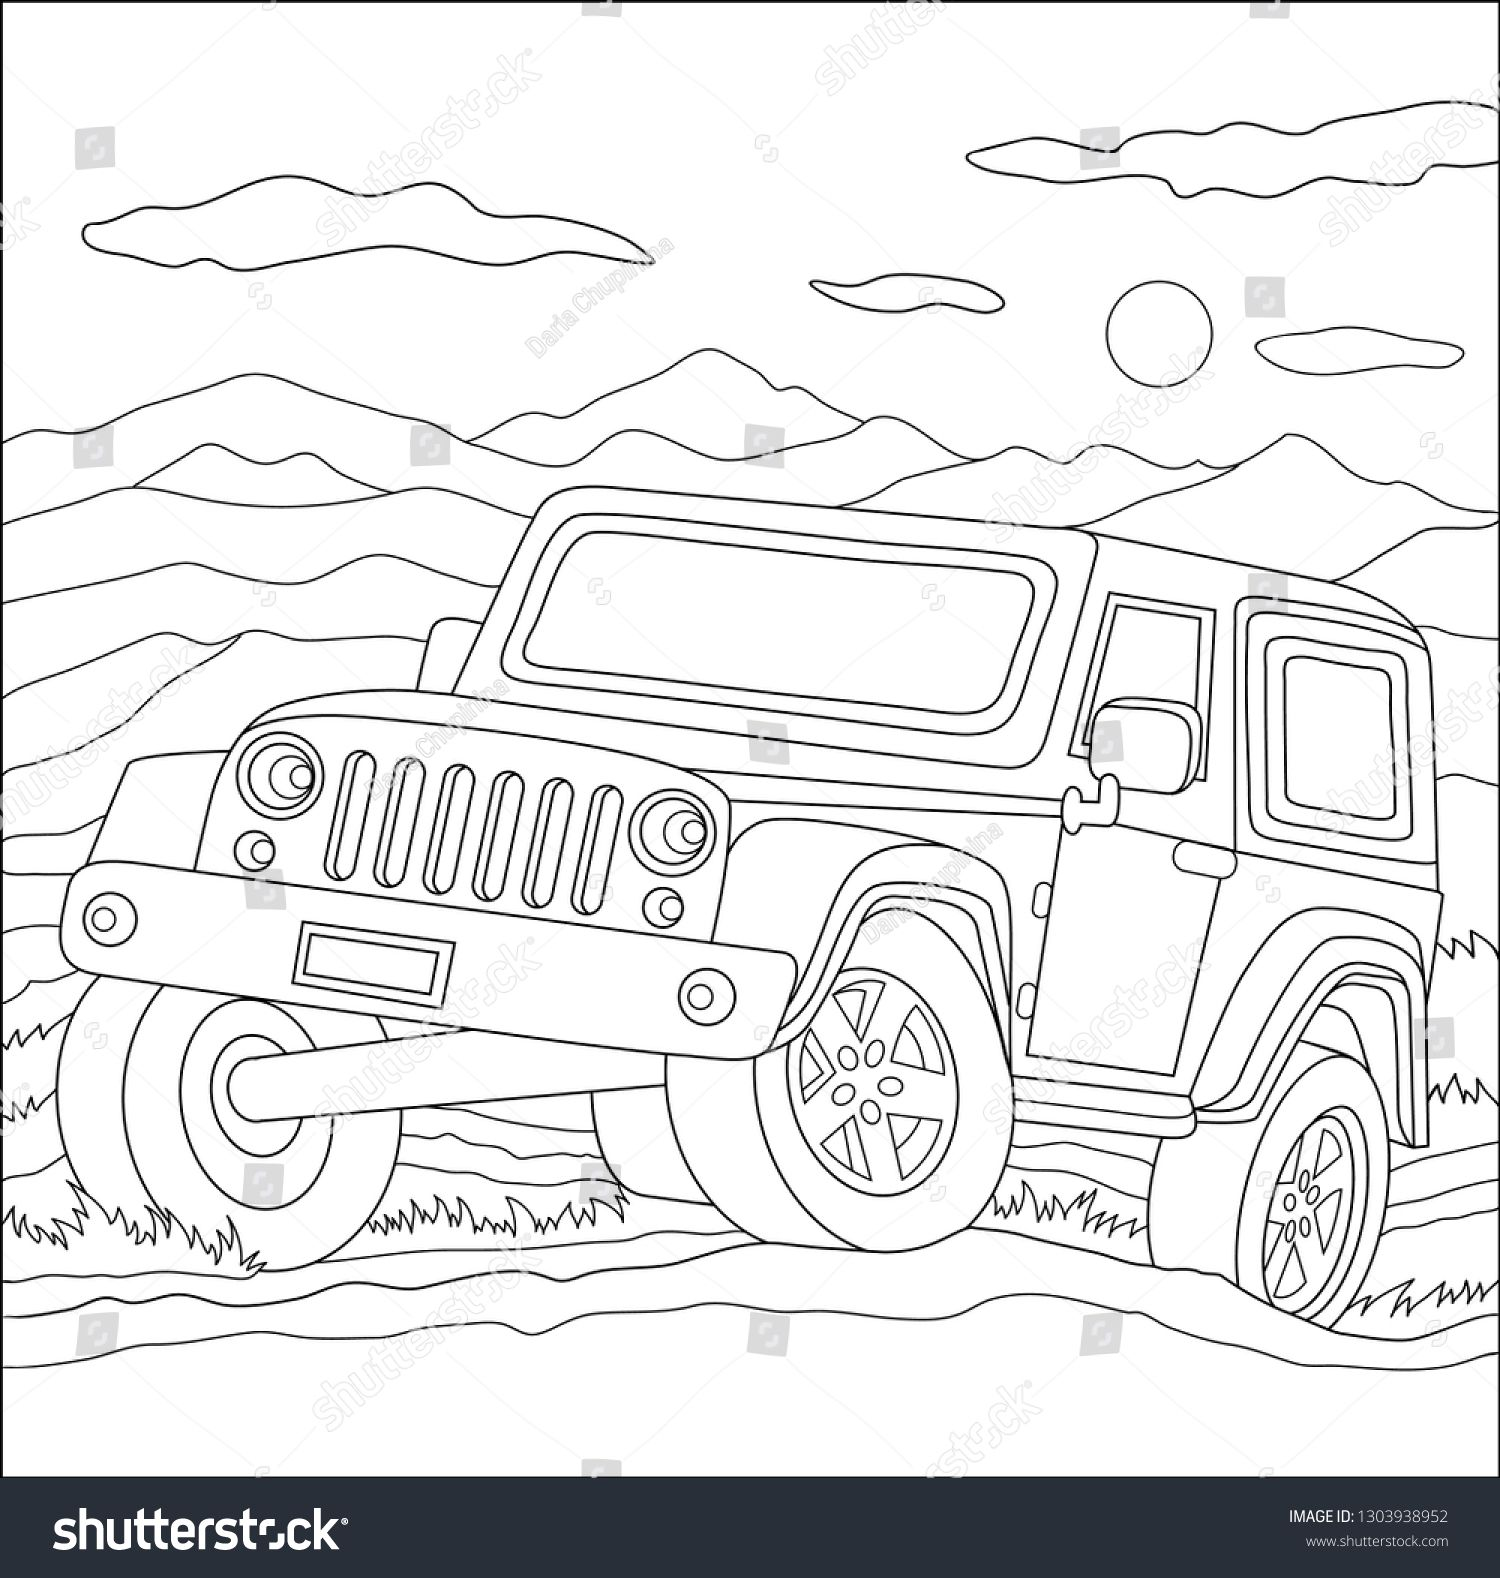 Car Coloring Sheets In 2021 Coloring Pages Printable Coloring Pages Cars Coloring Pages